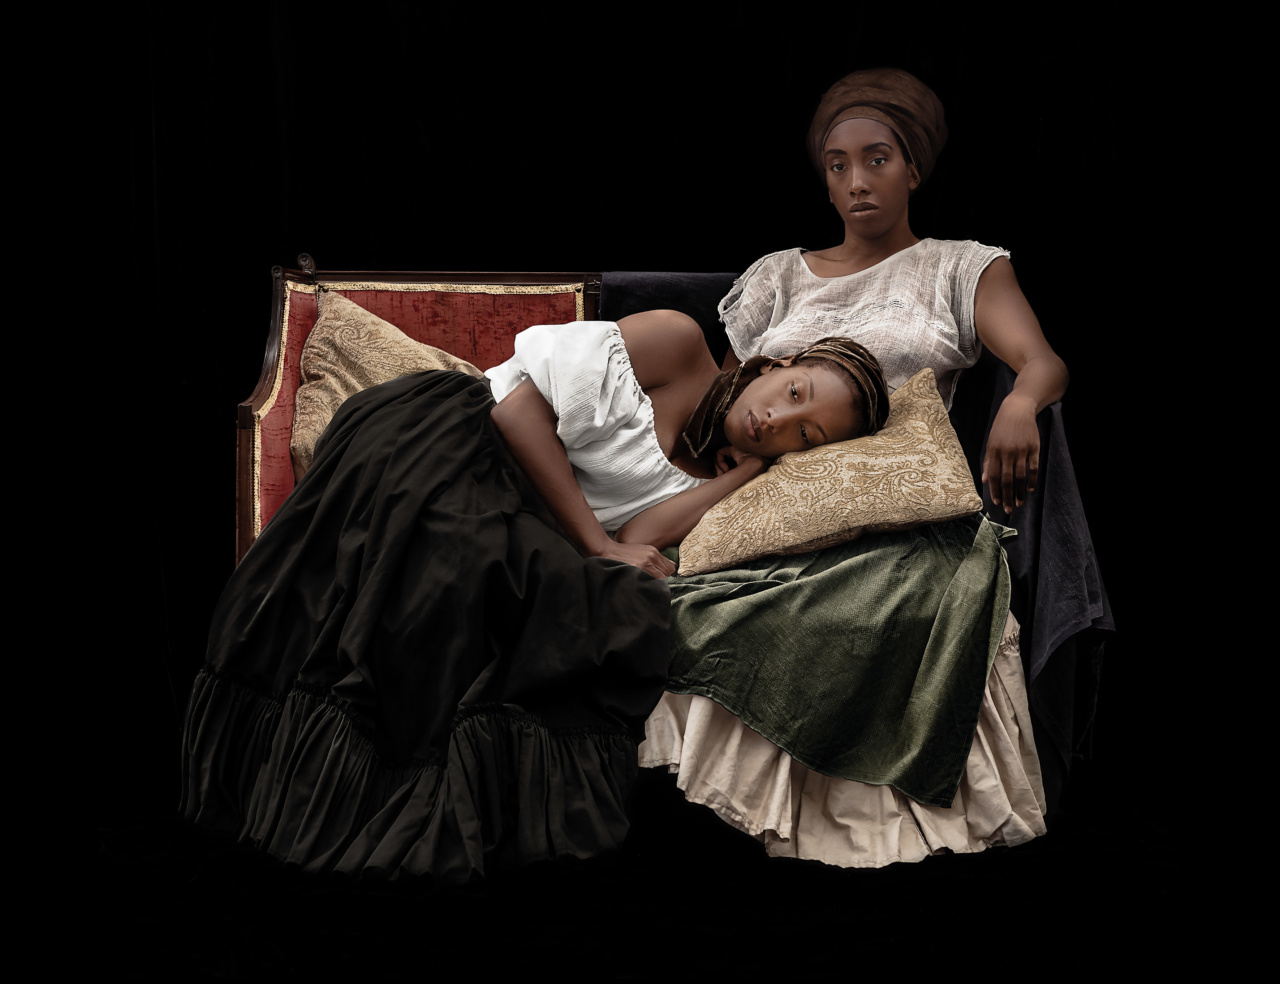 Ayana V. Jackson, Moments of Sweet Reprieve, from the series Intimate Justice in the Stolen Moment, 2017. Courtesy of the artist and Galerie Baudoin Lebon.